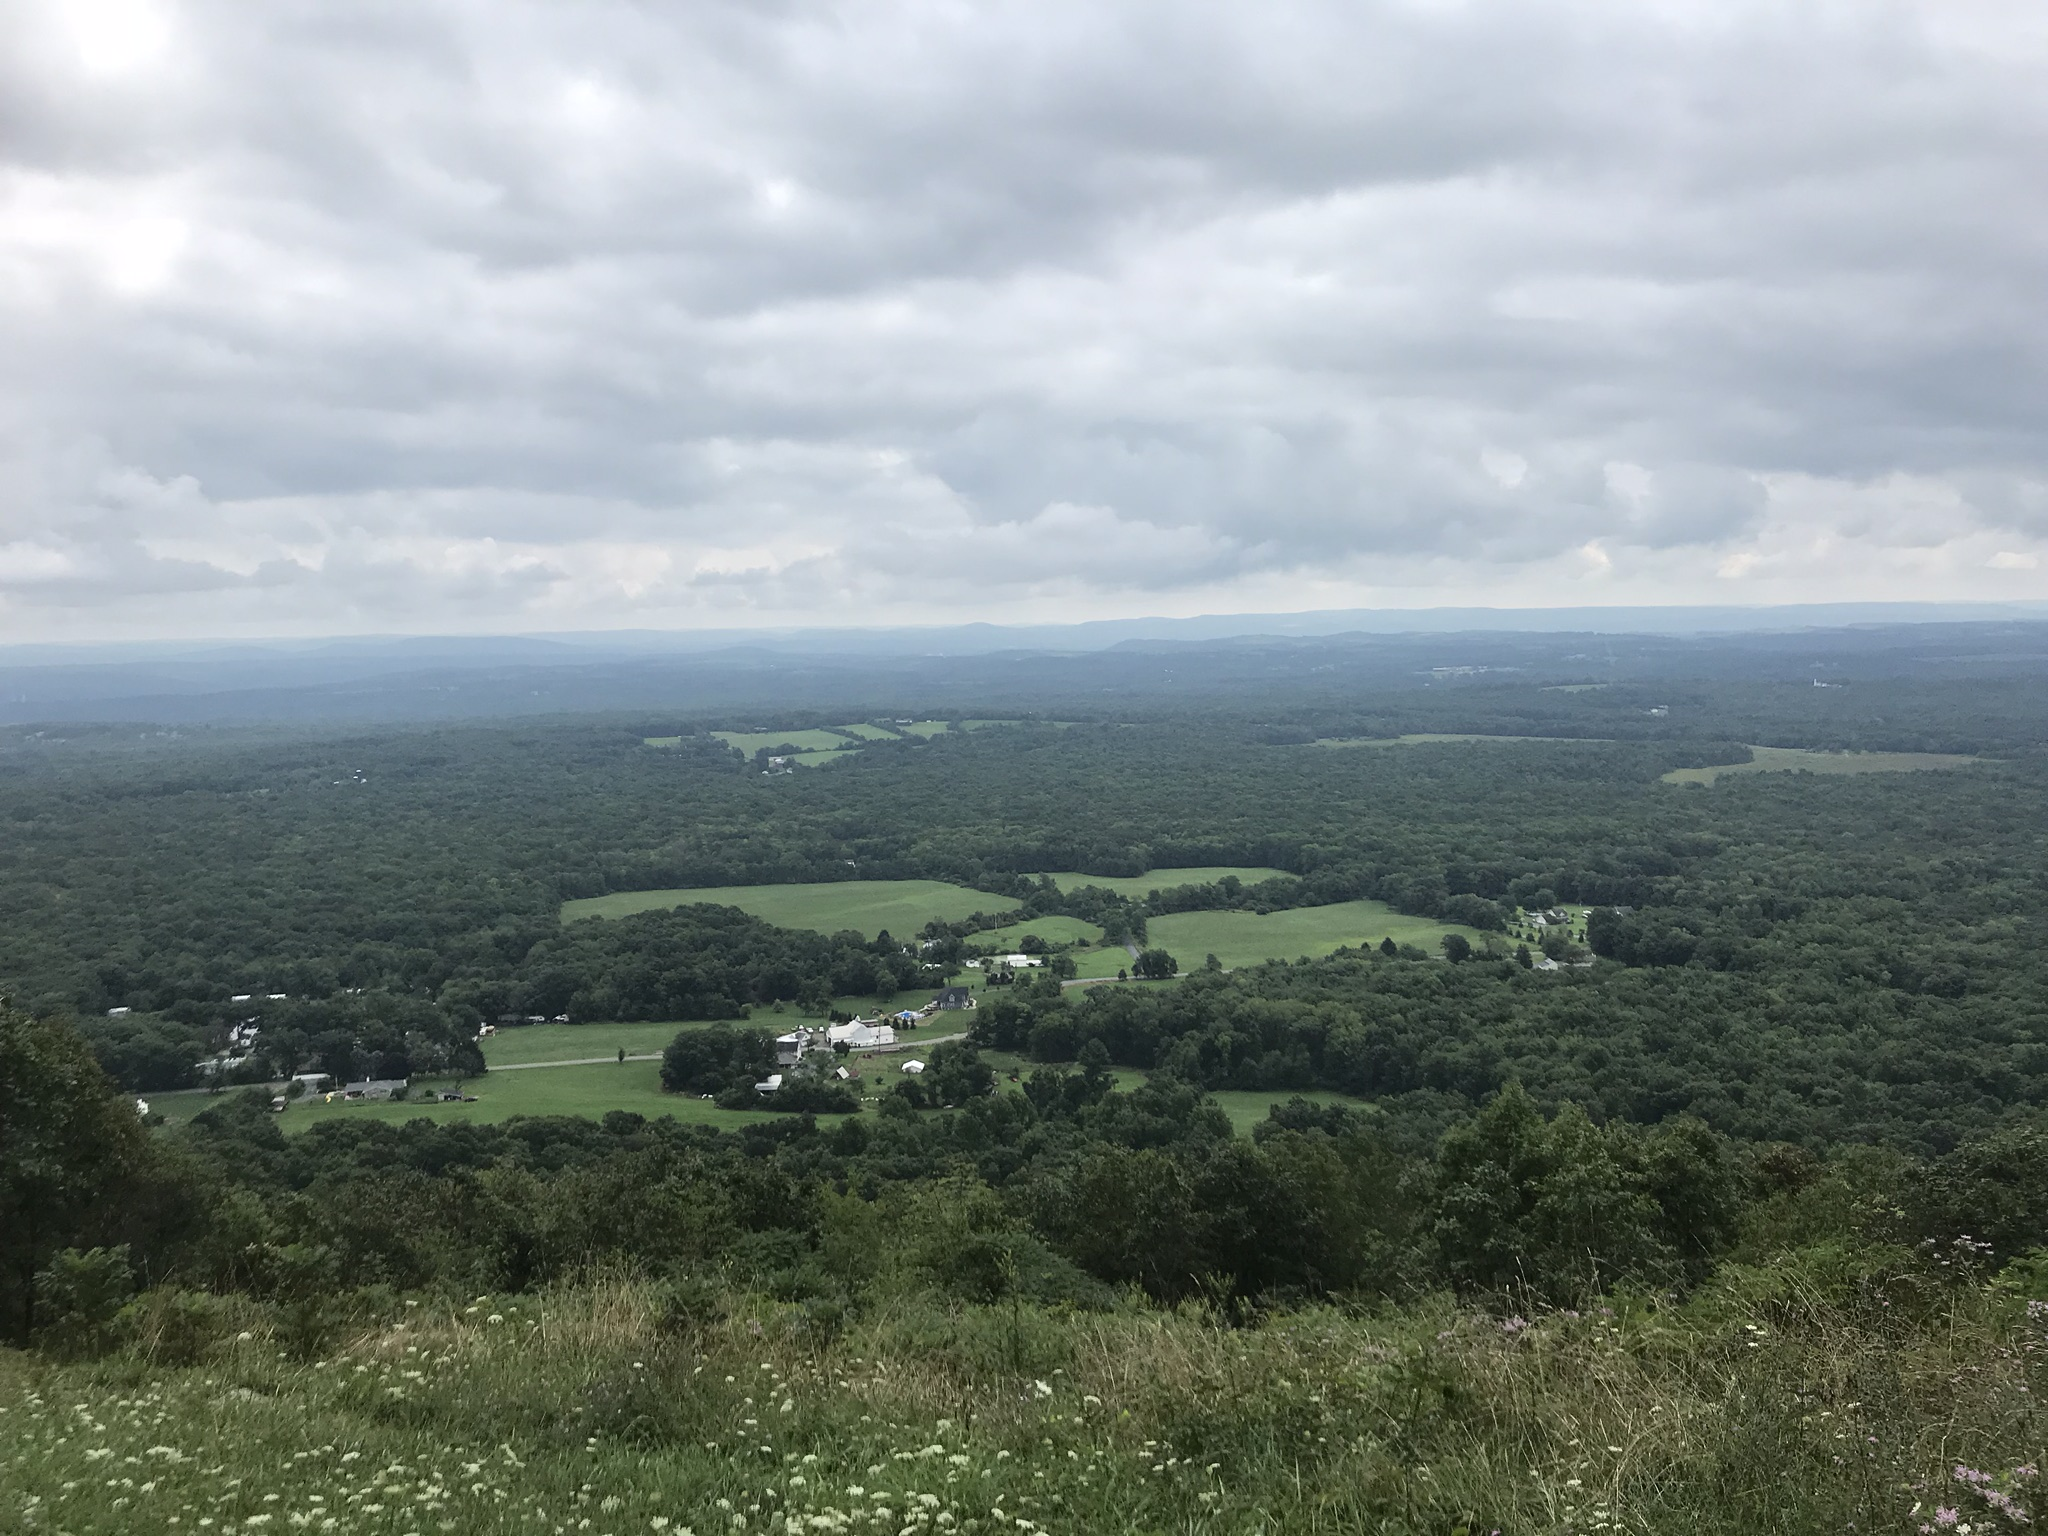 Looking South off the ridge.